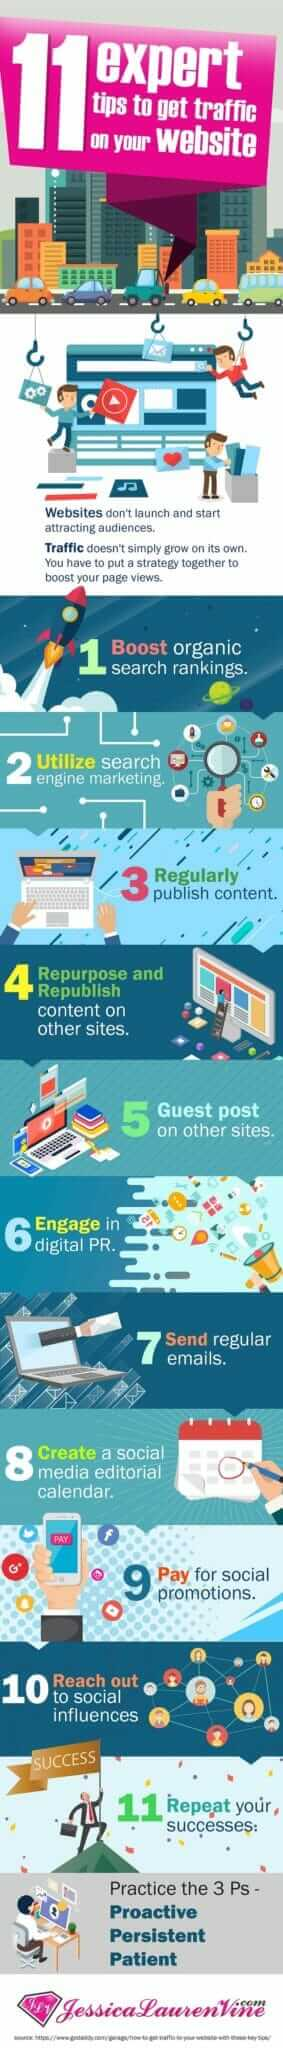 infographic showing you how to get more traffic to your website